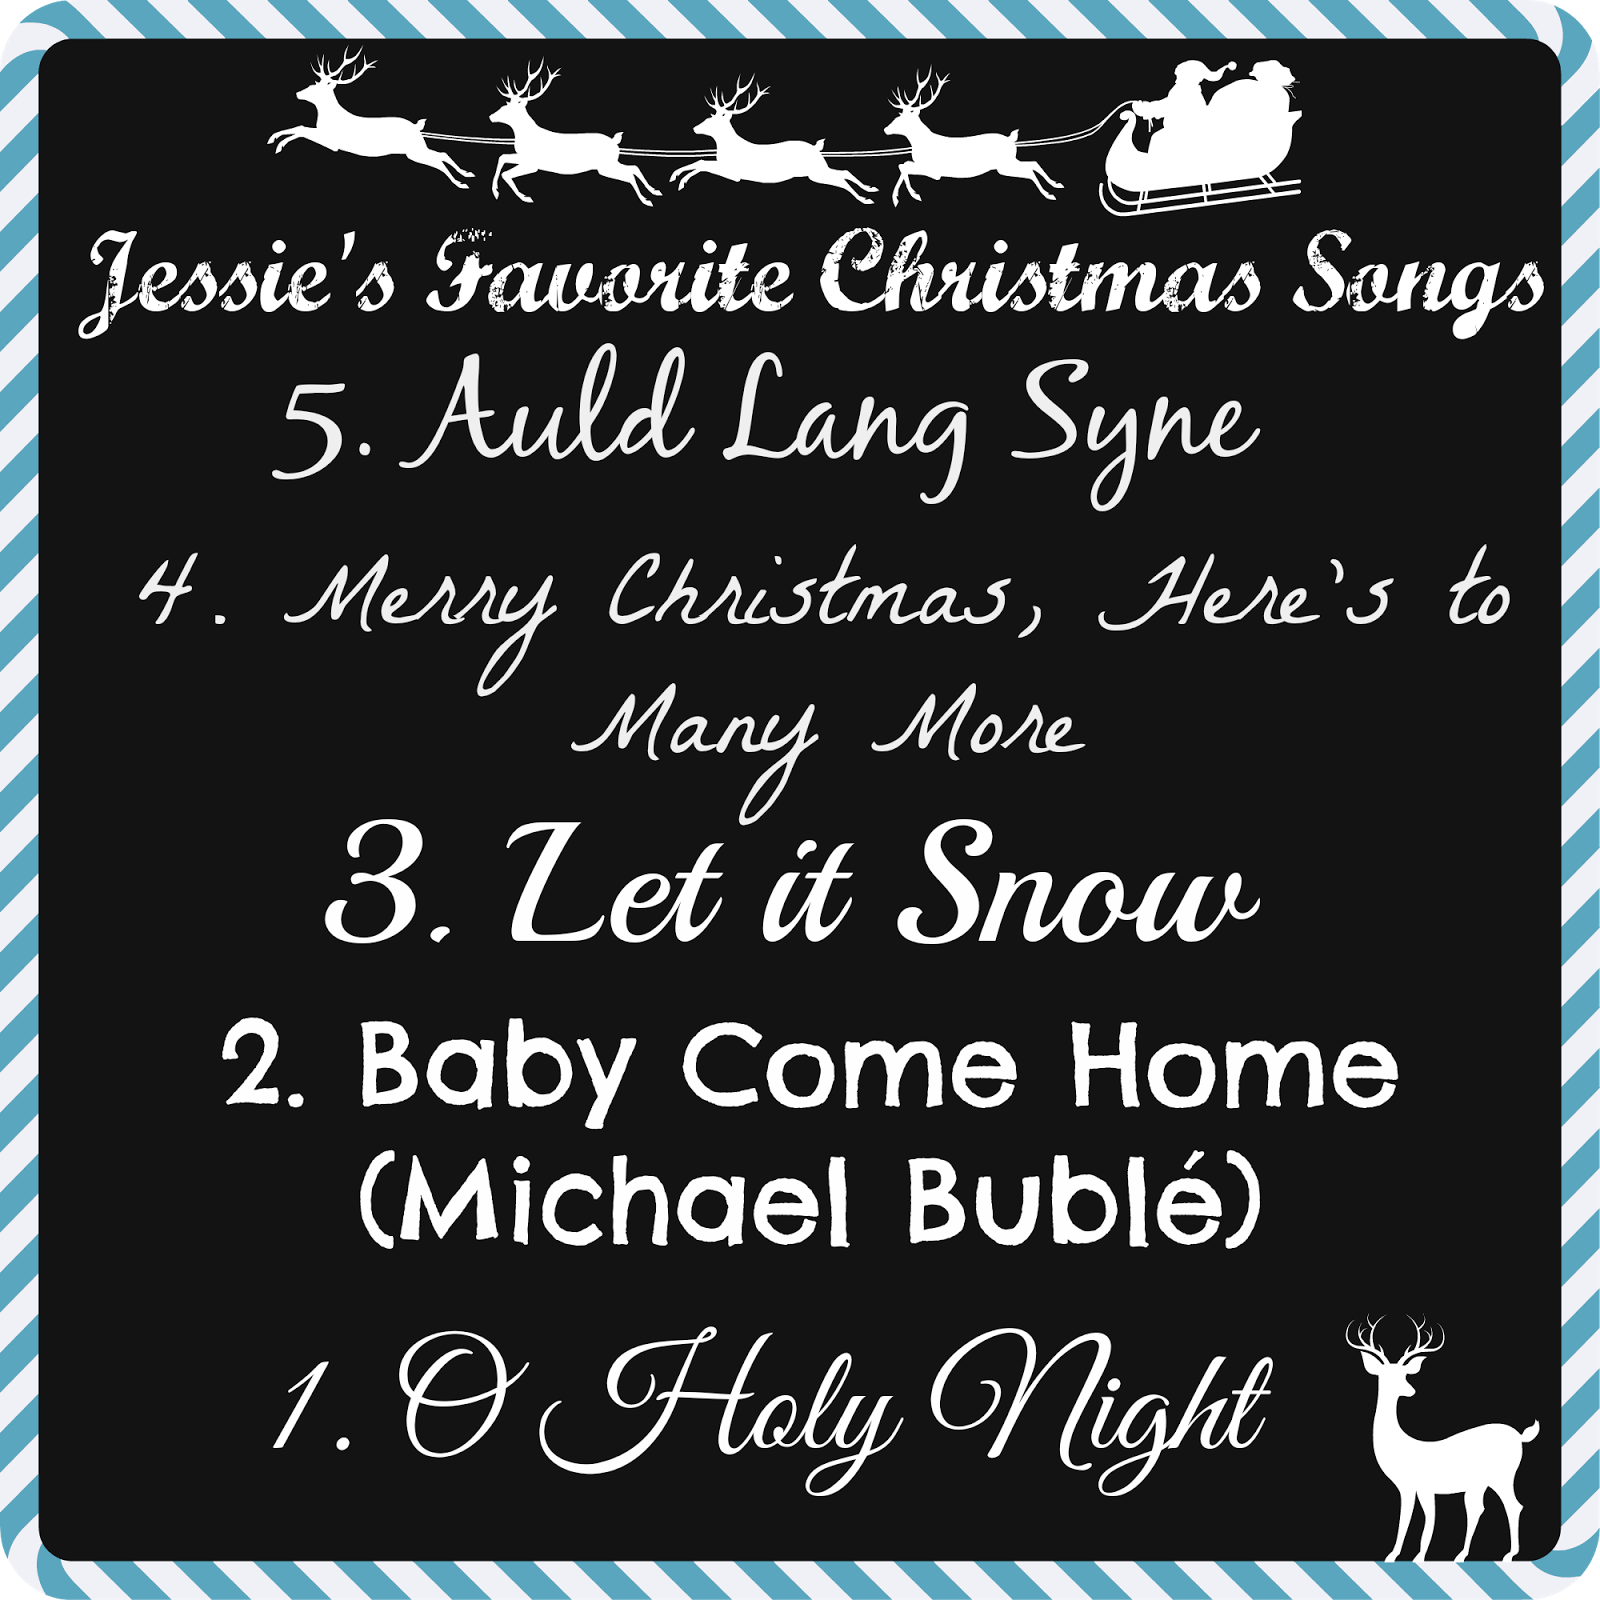 from the top auld lang syne merry christmas heres to many more - Best Christmas Songs Ever List